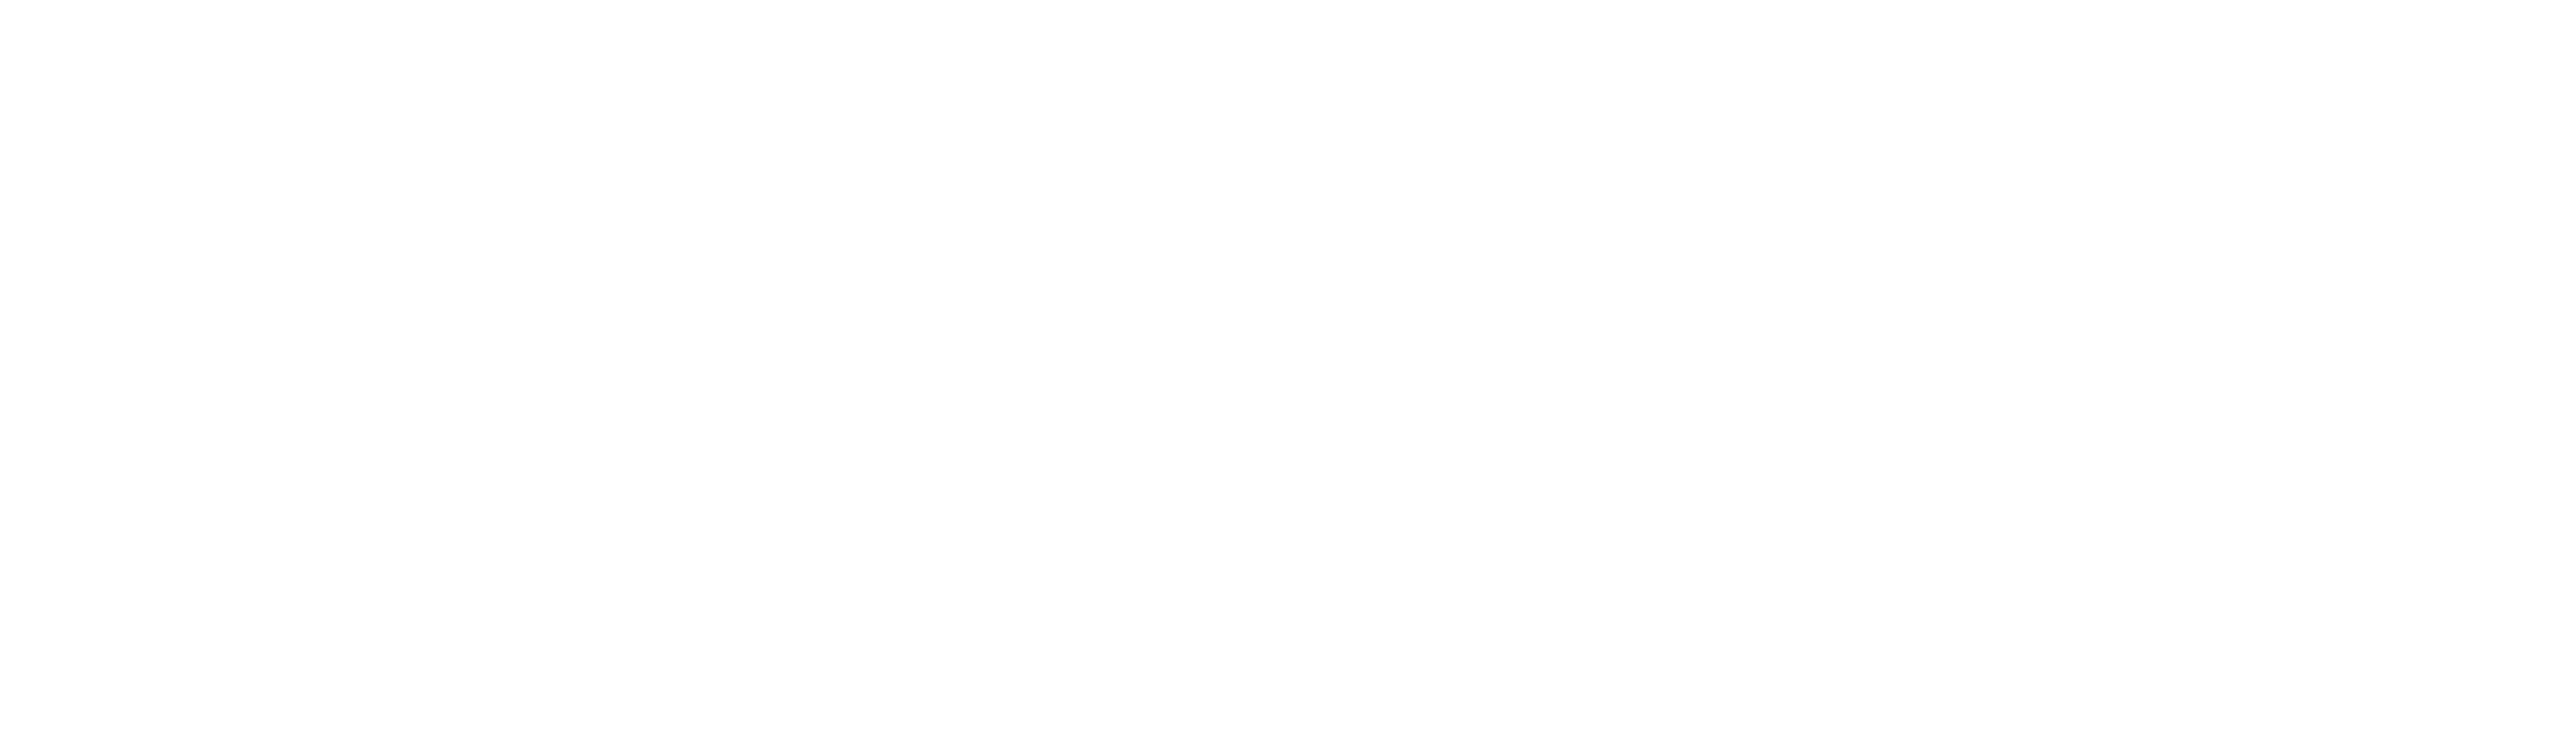 The Institute of the Motor Industry